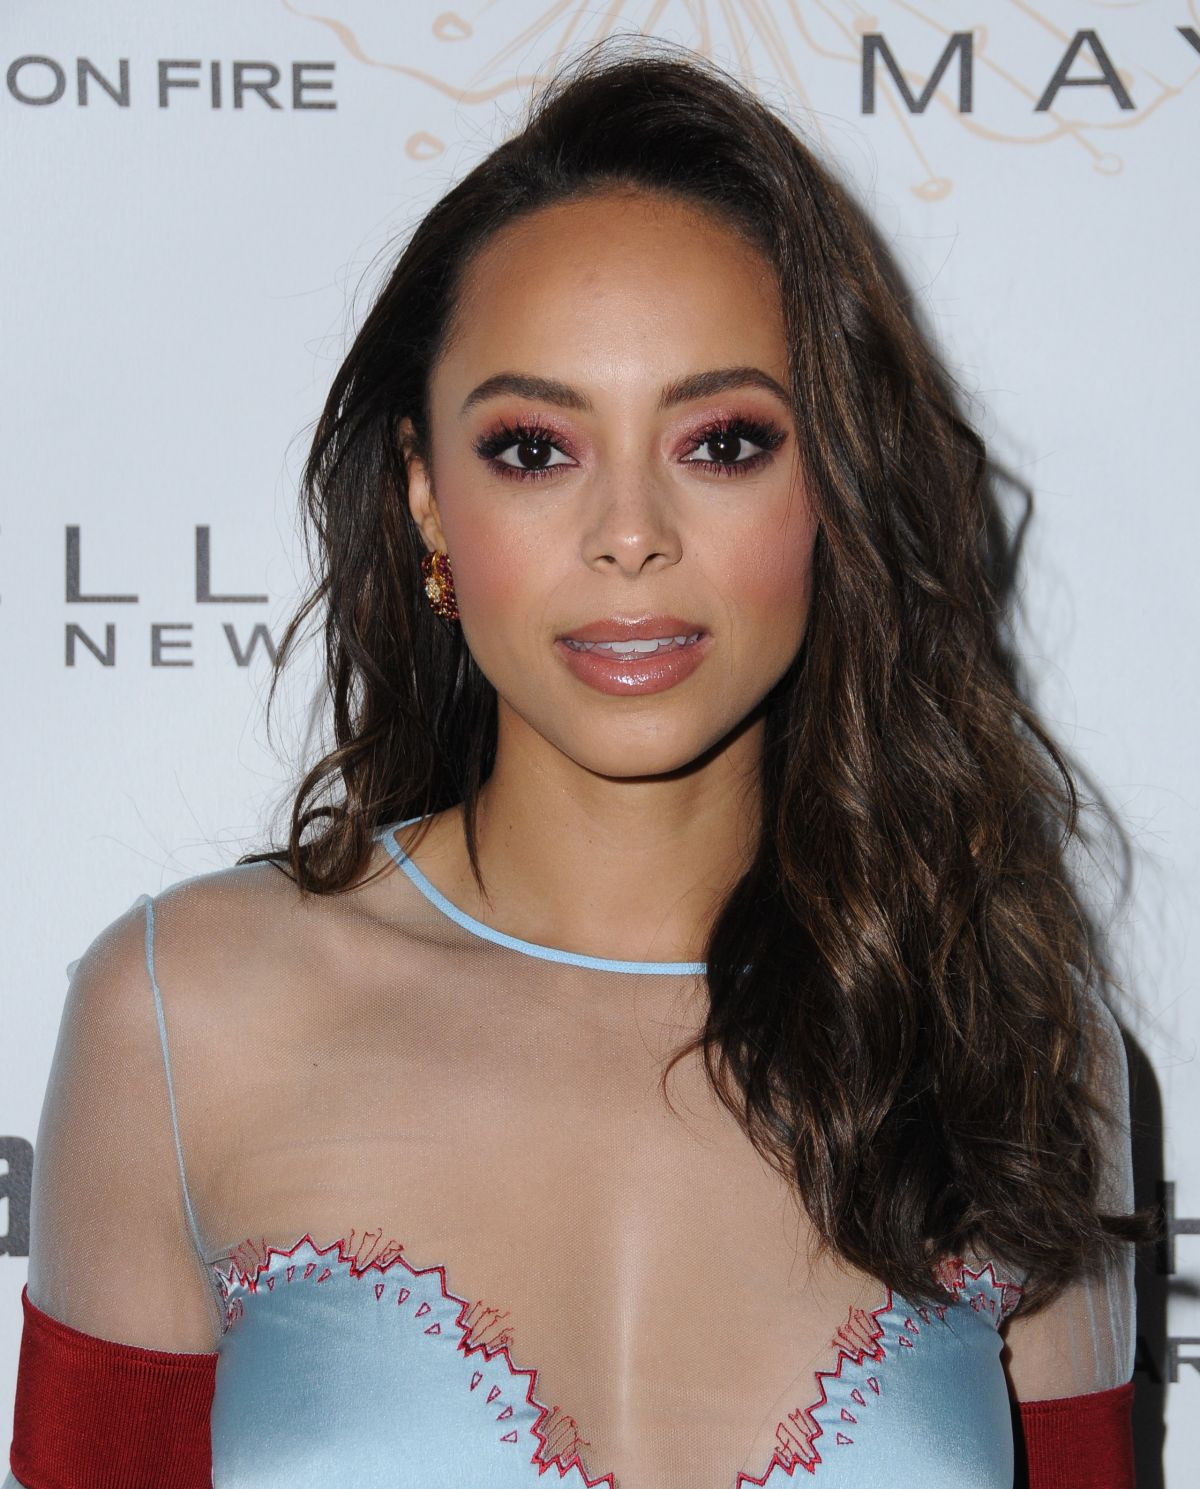 Amber Stevens West nudes (32 photos), Sexy, Is a cute, Twitter, lingerie 2020